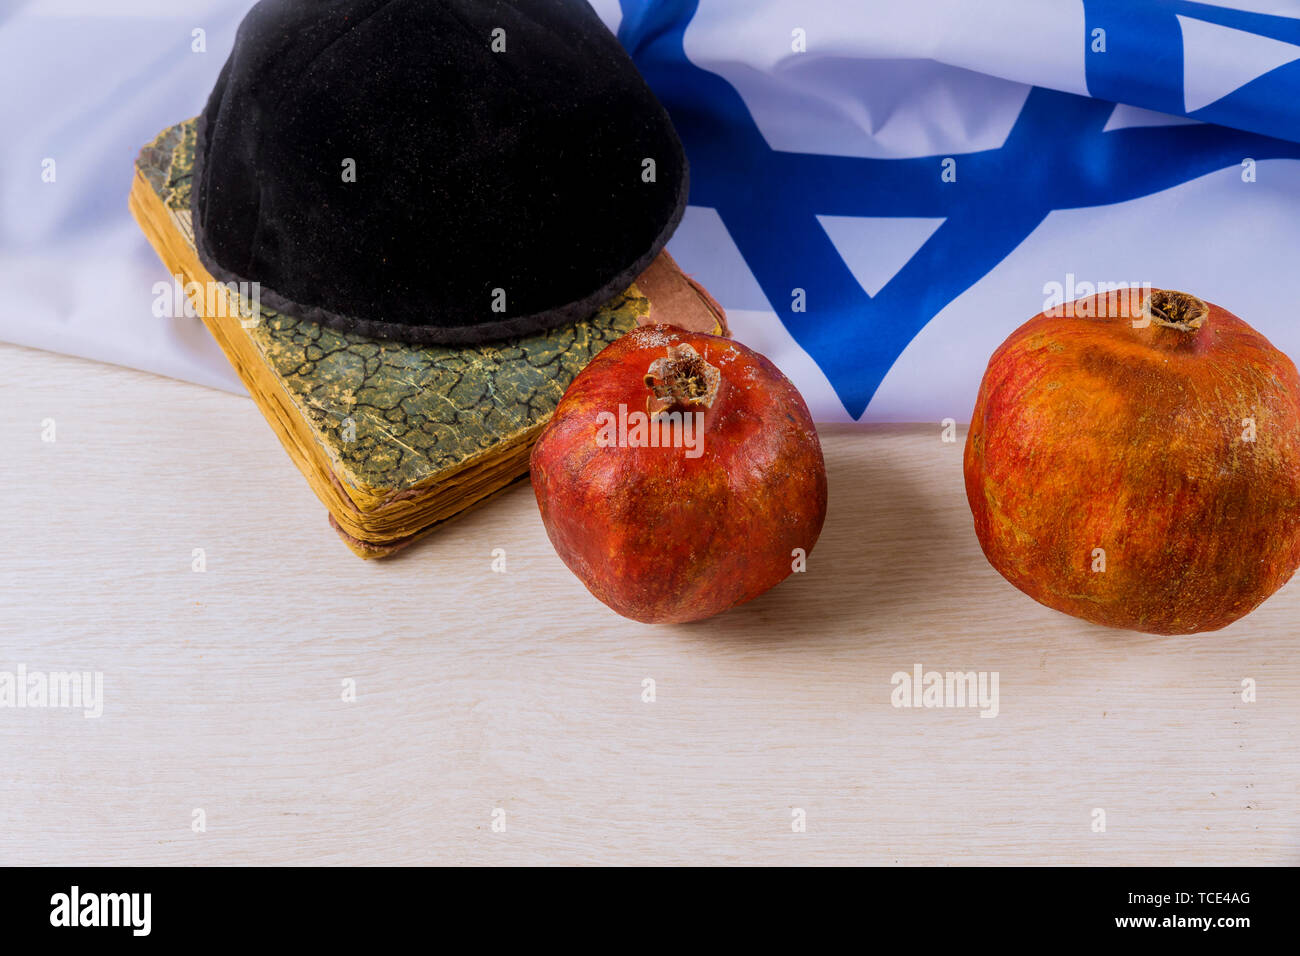 Rosh hashanah Jewish New Year . Traditional holiday symbols pomegranate on a view flat lay background, copy space. - Stock Image